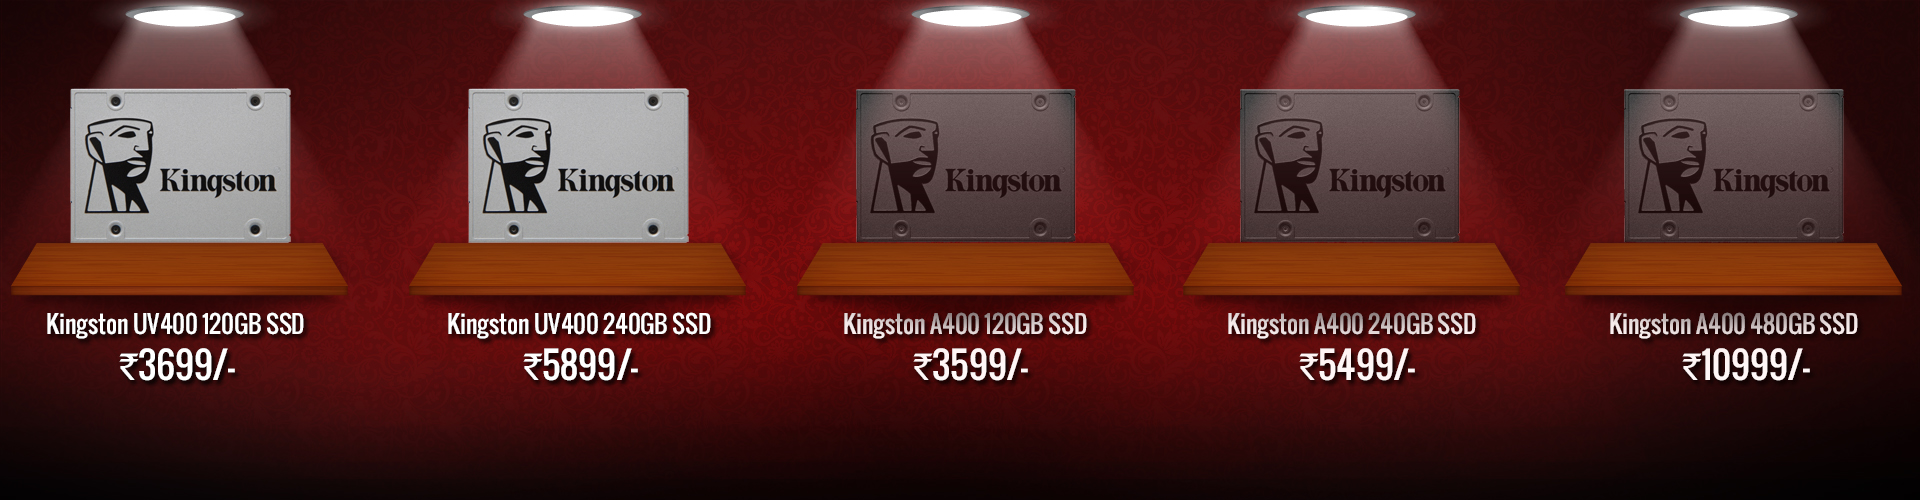 kingston-promo-banner1